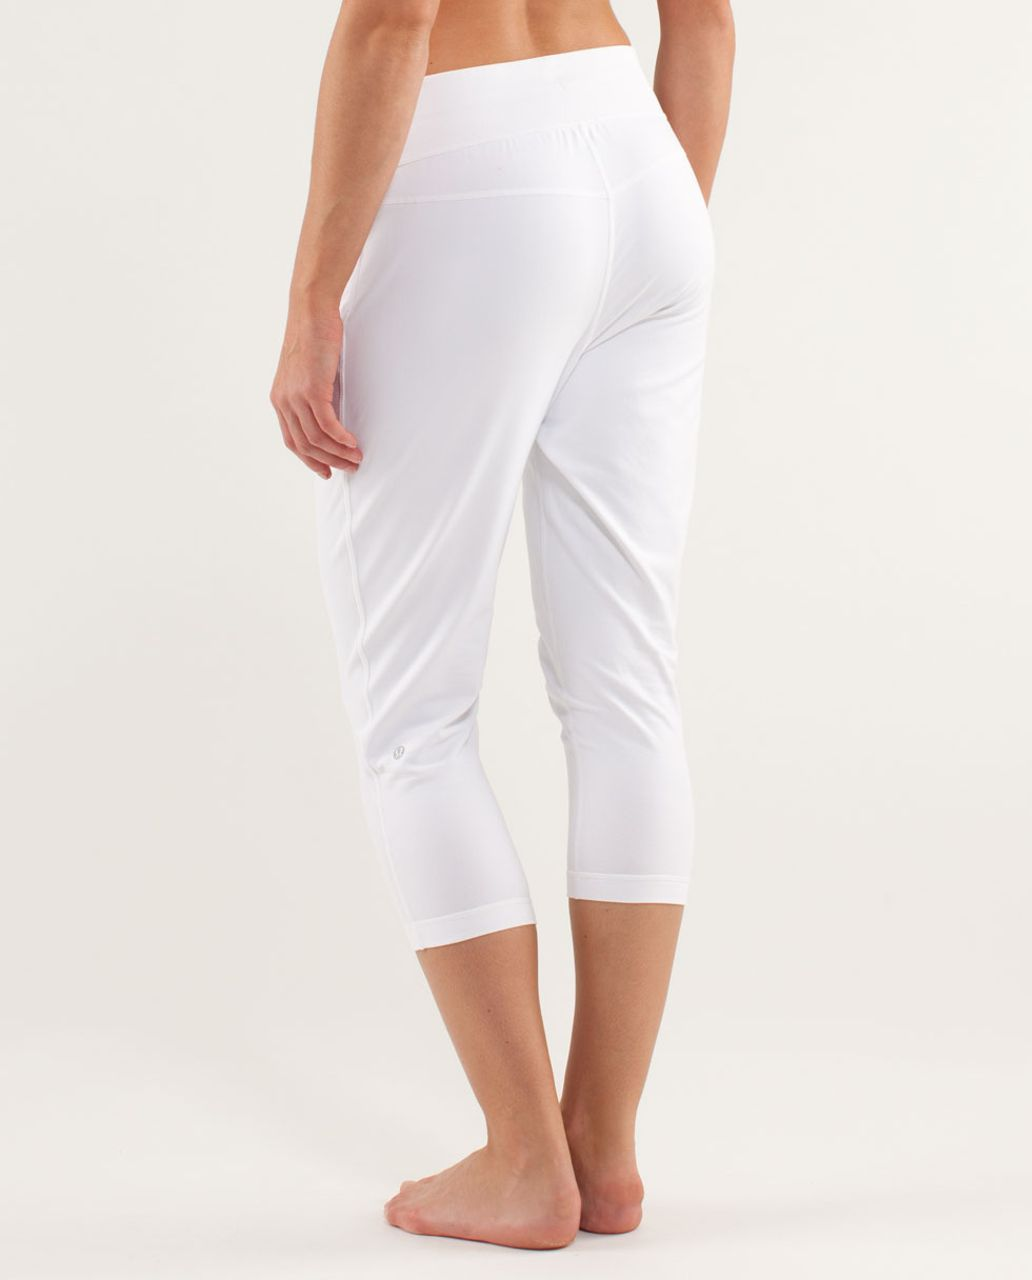 44aaa9f233 Lululemon Free Fall Crop - White - lulu fanatics